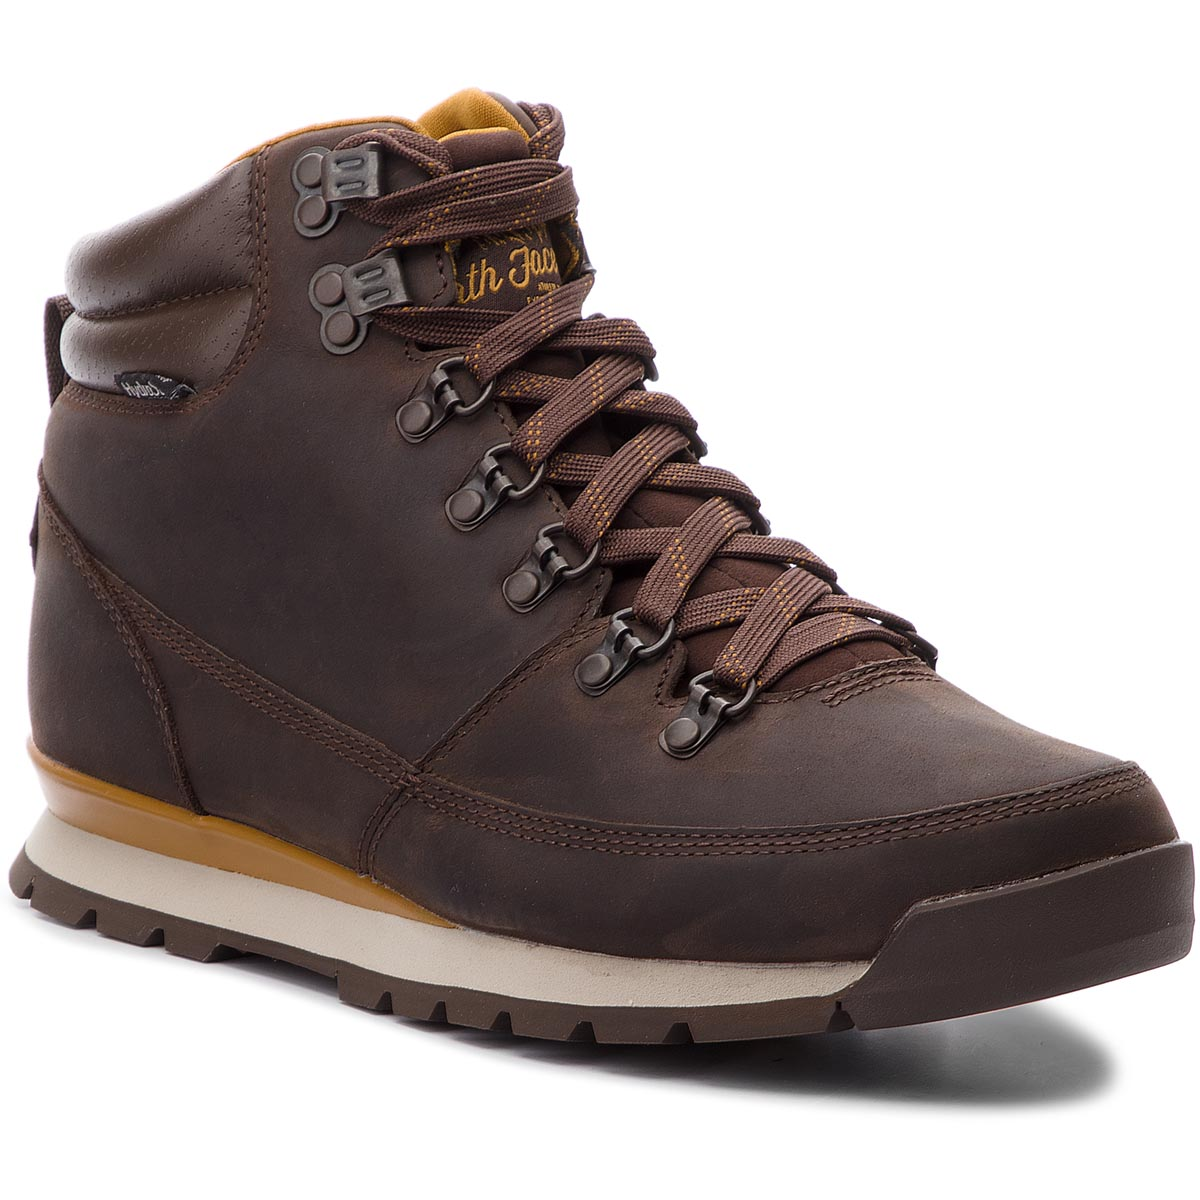 Trekkings The North Face - Back-To-Berkeley Redux Leather T0cdl05sh Chocolate Brown/Golden Brown imagine epantofi.ro 2021